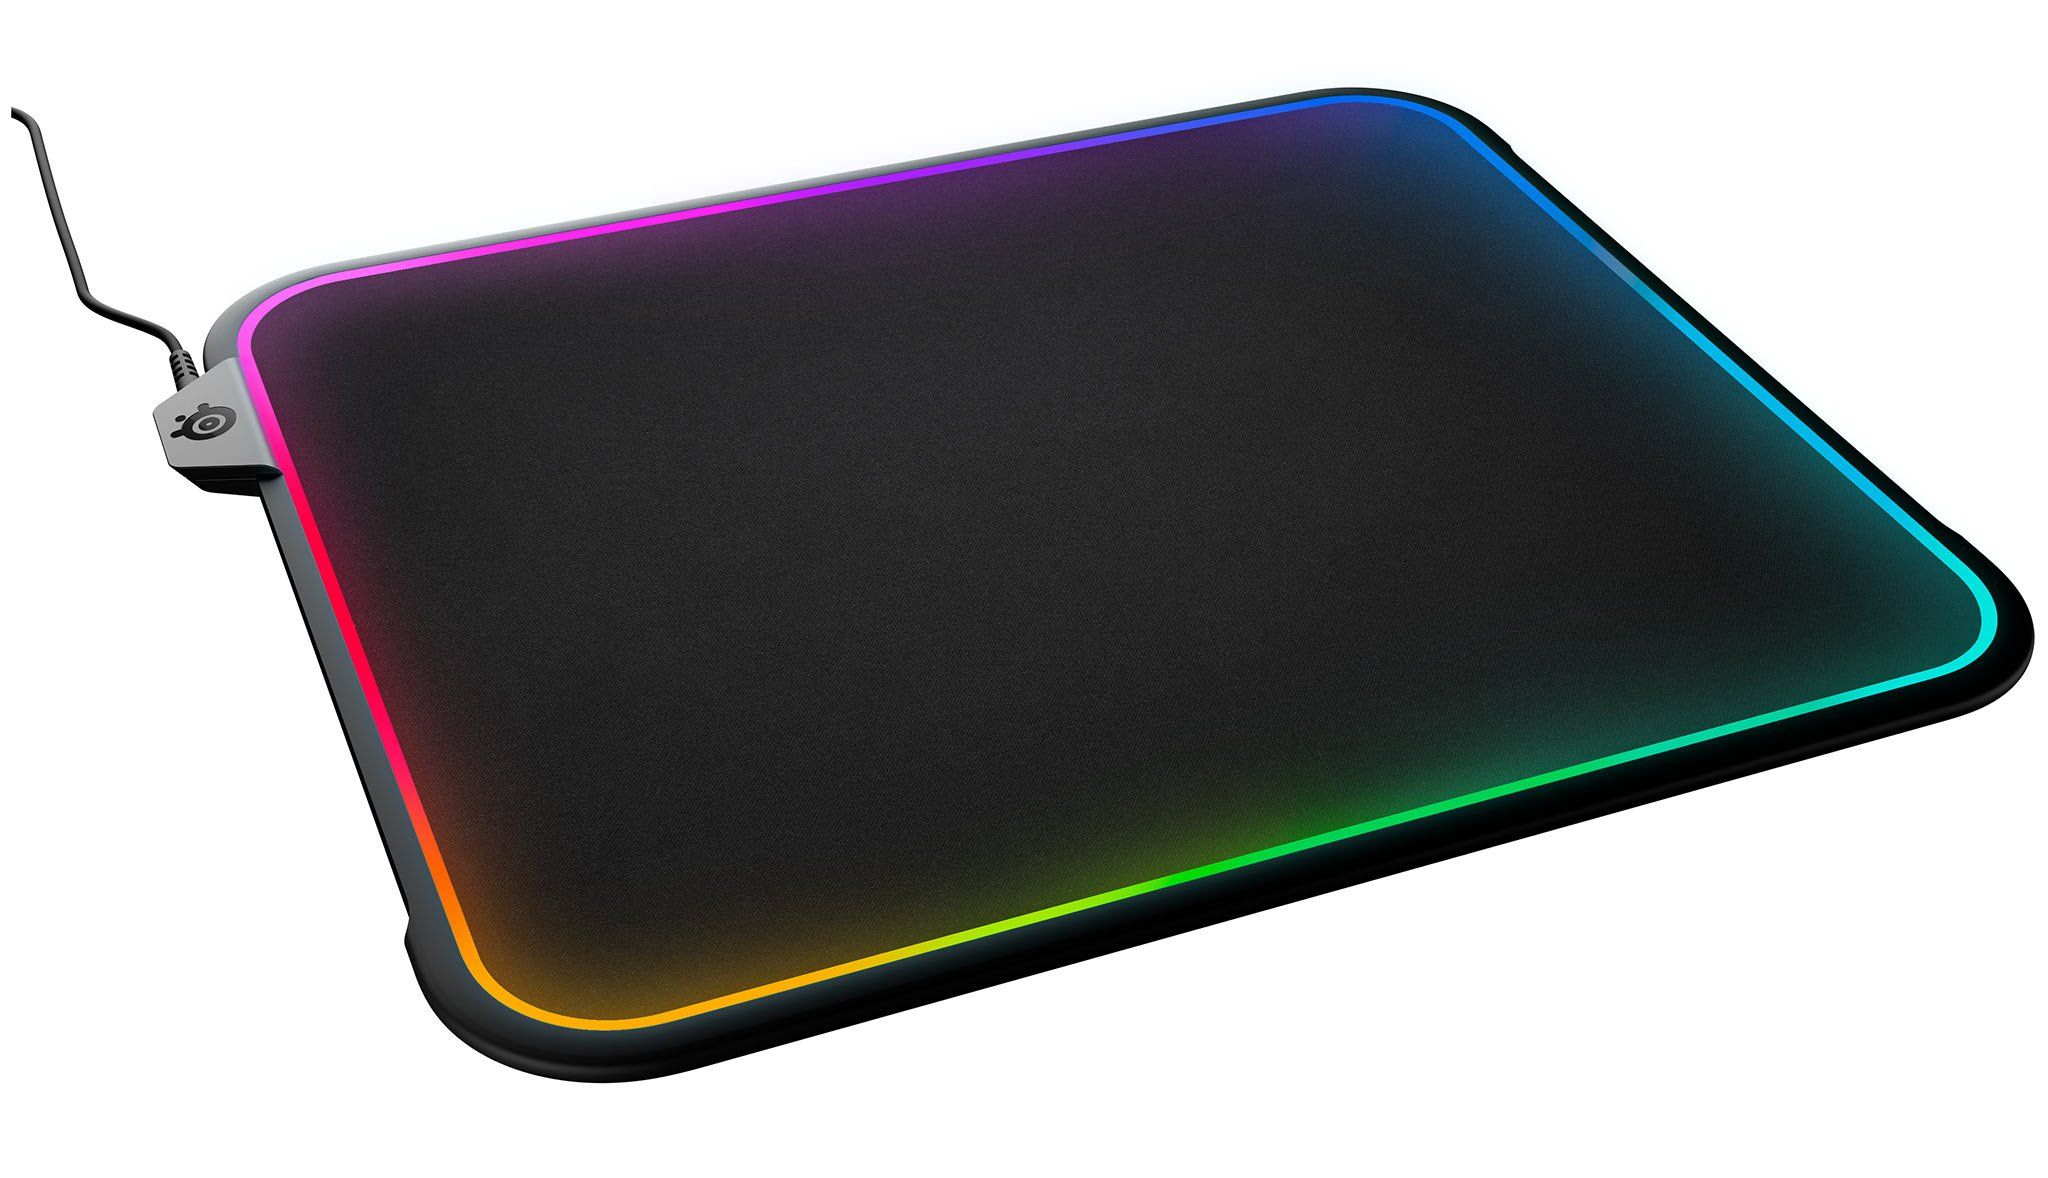 Light up your life with the new SteelSeries QcK Prism mousepad